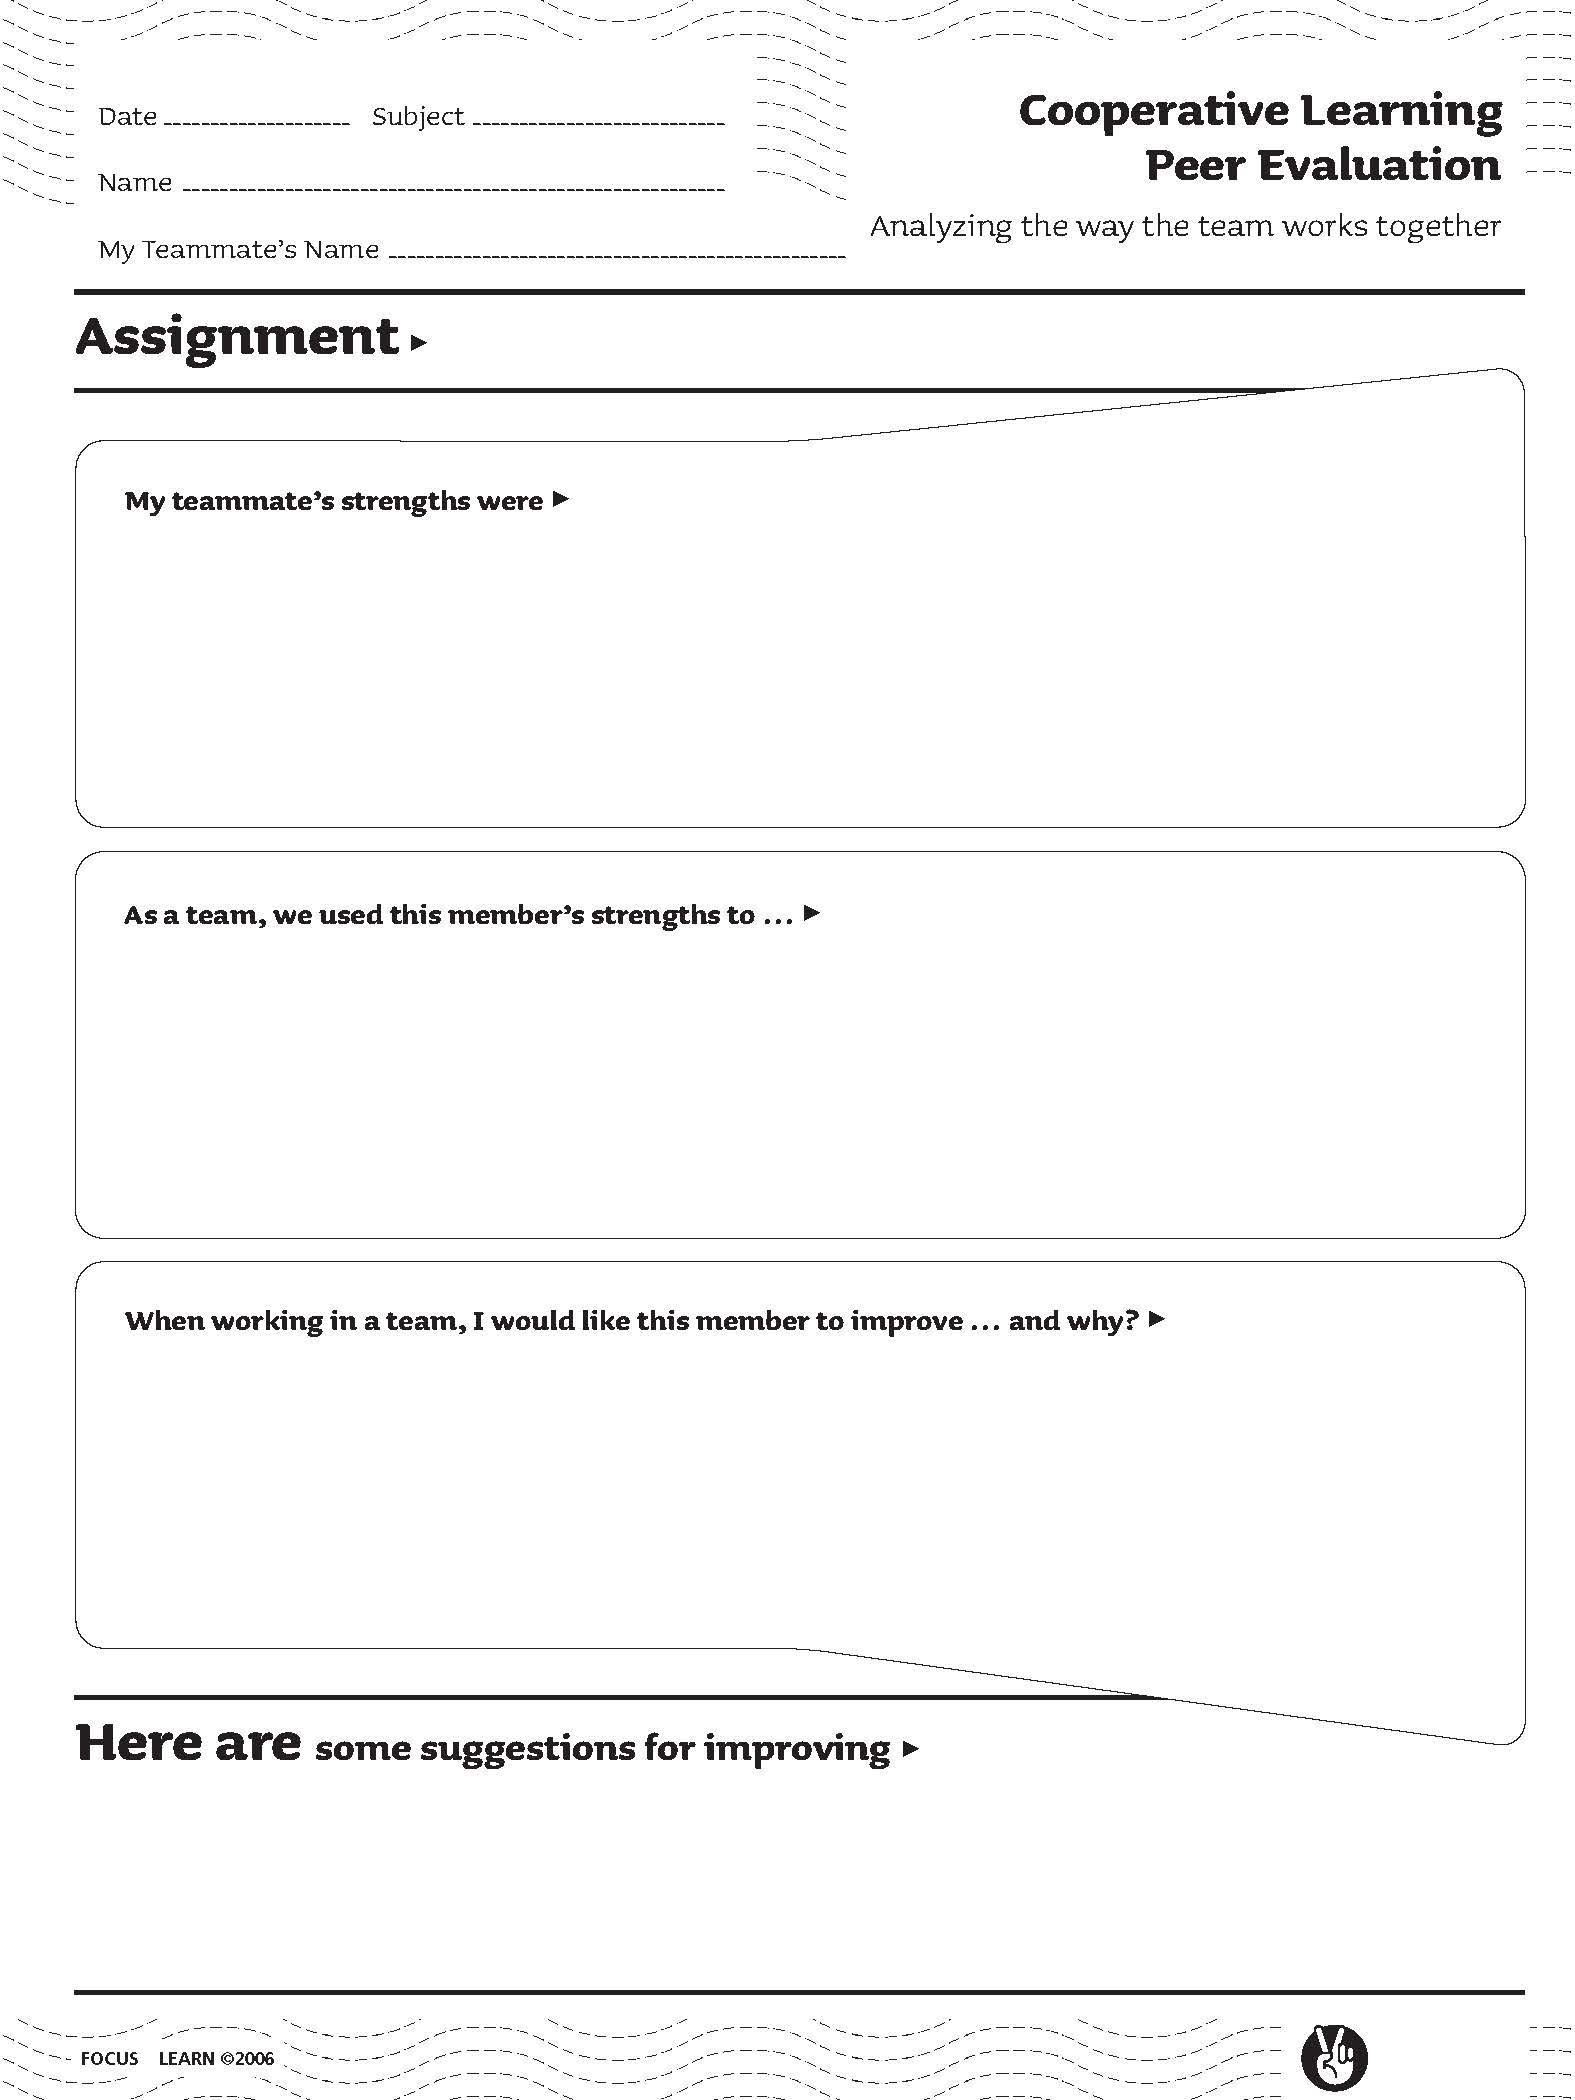 Cooperative Learning Peer Evaluation